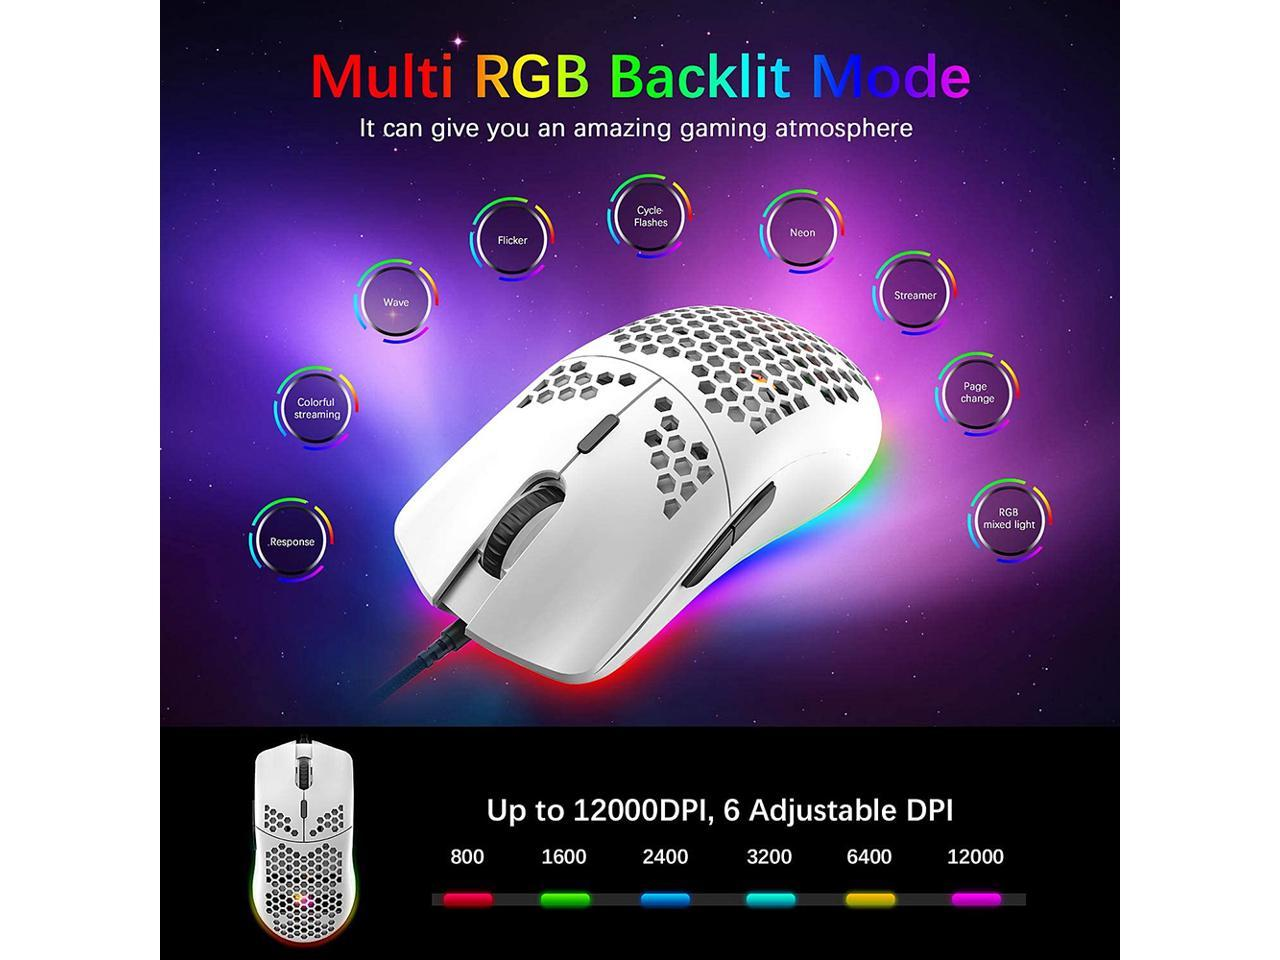 Lightweight Gaming Mouse,26 Kinds RGB Backlit Mice,PixArt 3325 12000 DPI Mouse,Ultralight Honeycomb Shell Ultraweave Cable Mouse and Anti-Key Can Be Set for PC Gamers and Xbox and PS4 Users Pink